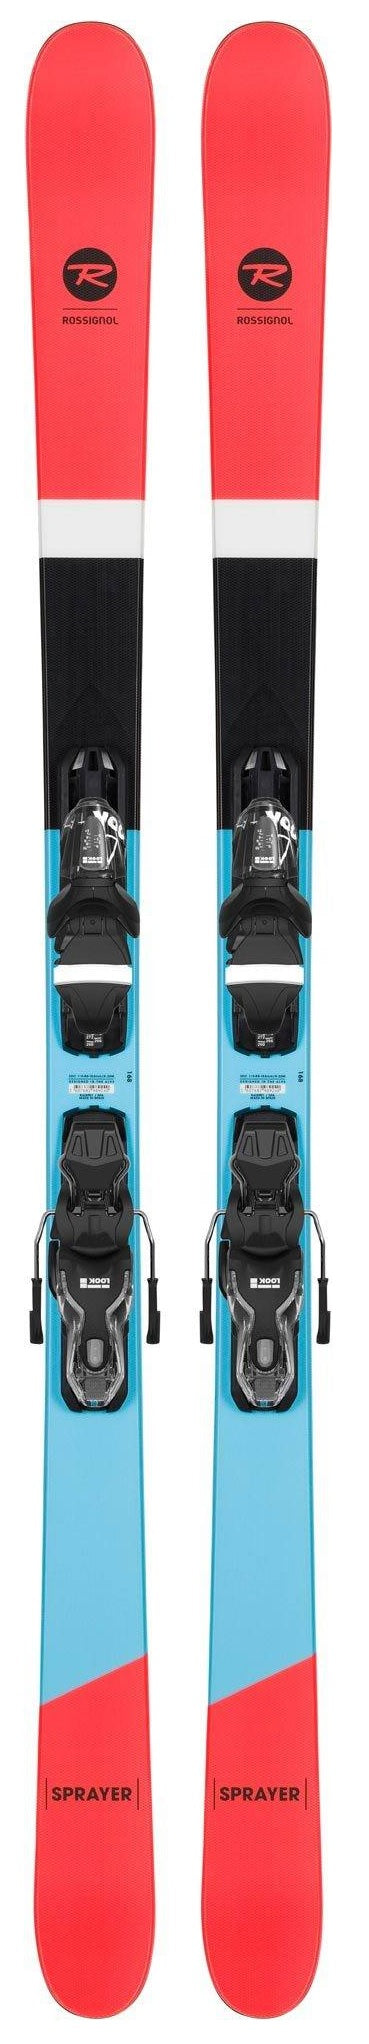 ROSSIGNOL 2020 Rossignol Sprayer snow skis with bindings - ProSkiGuy